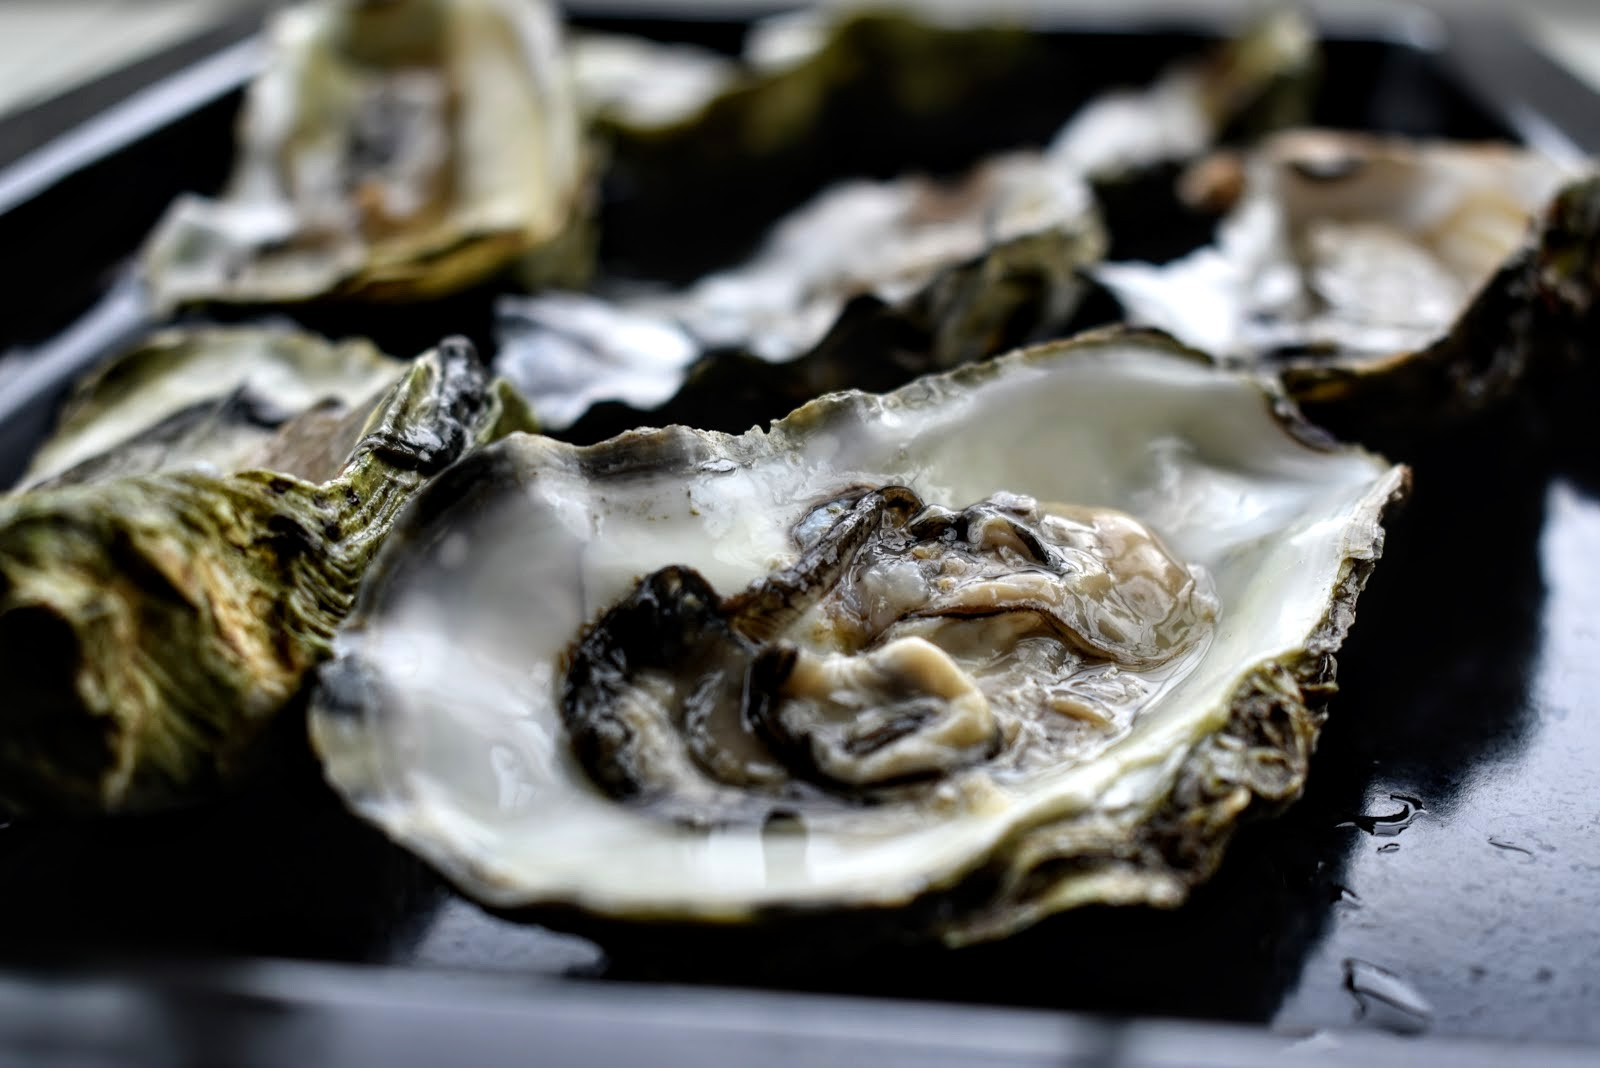 Quickly Baked Giga Oysters from Limfjord (Denmark) and Italian Wines